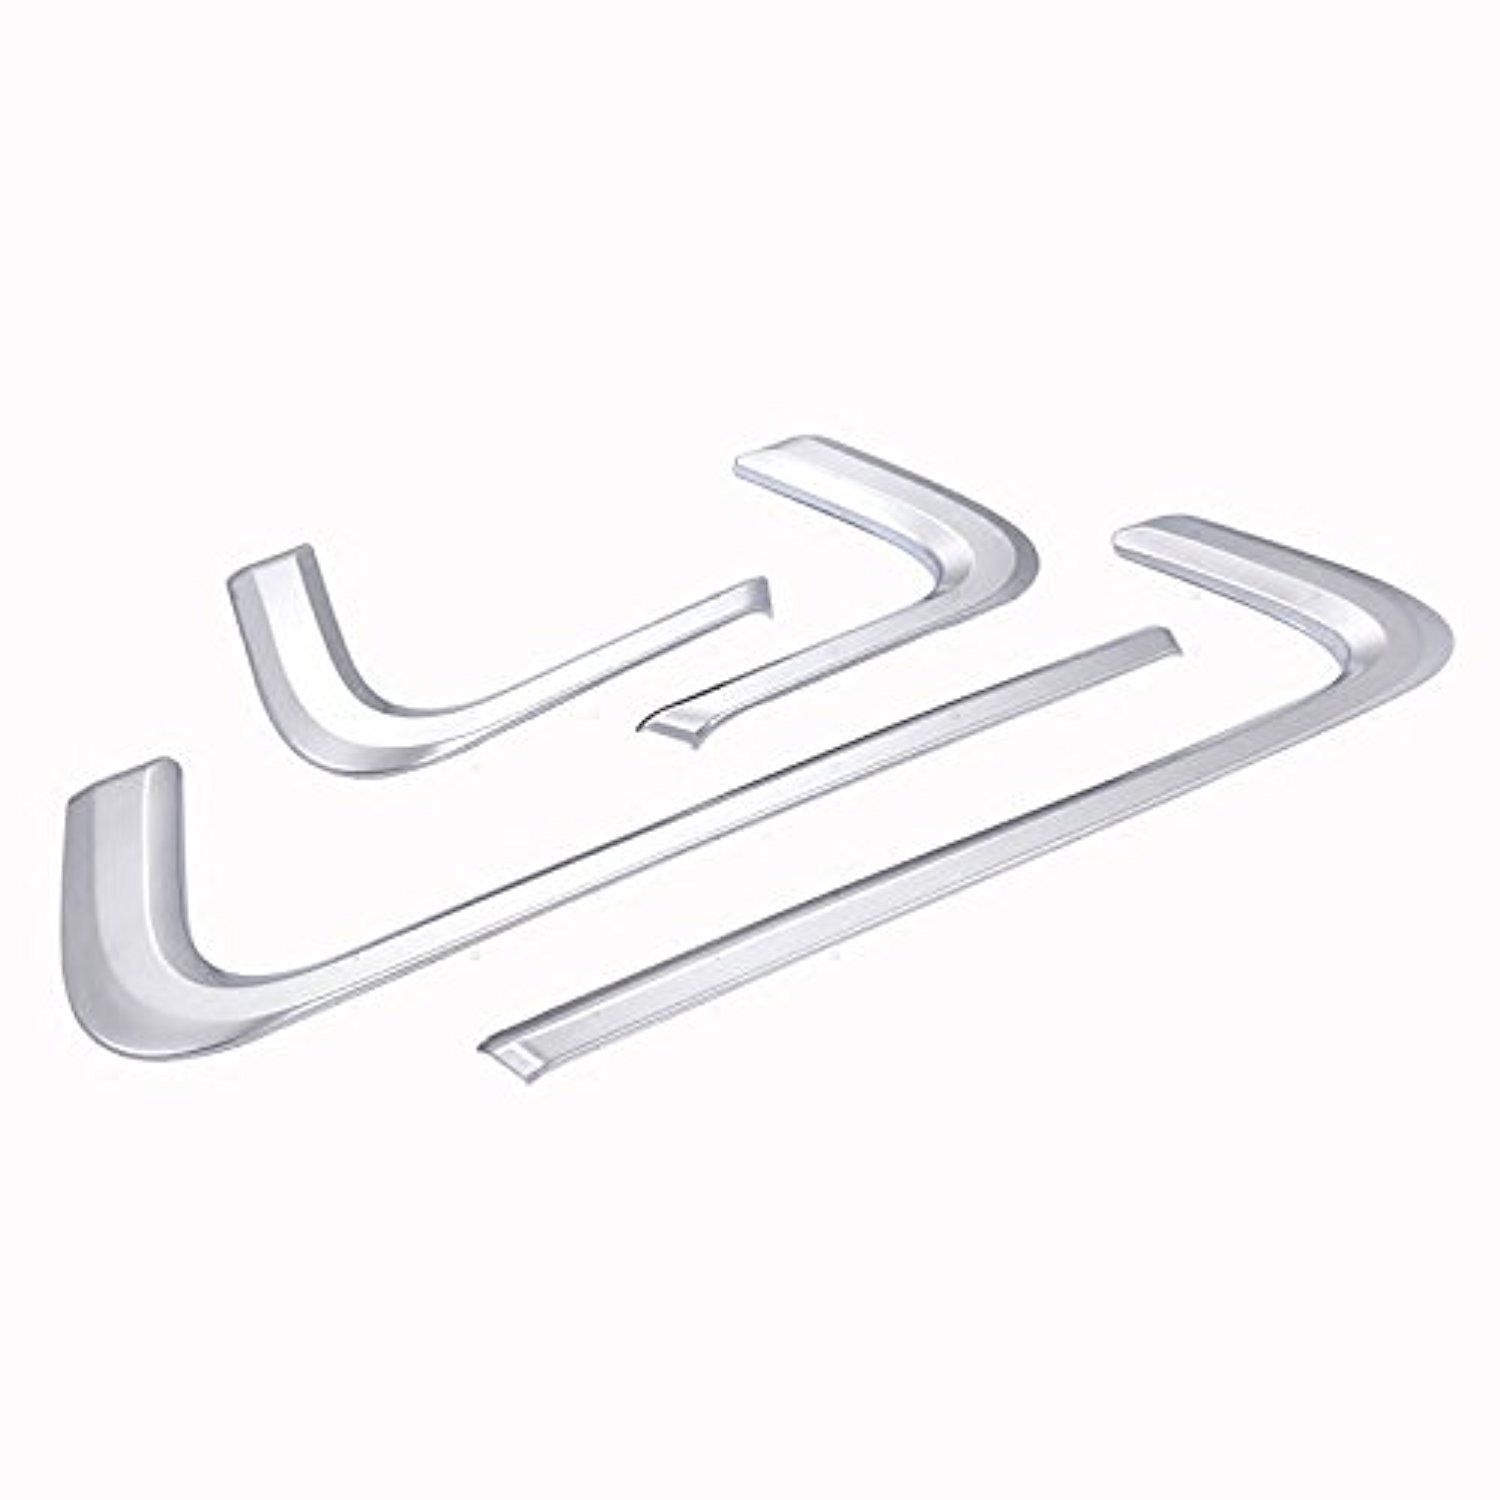 abs door inner cover trim decor 4pcs for land rover range rover Used Range Rover Sport abs door inner cover trim decor 4pcs for land rover range rover sport 2014 2016 awesome products selected by anna churchill